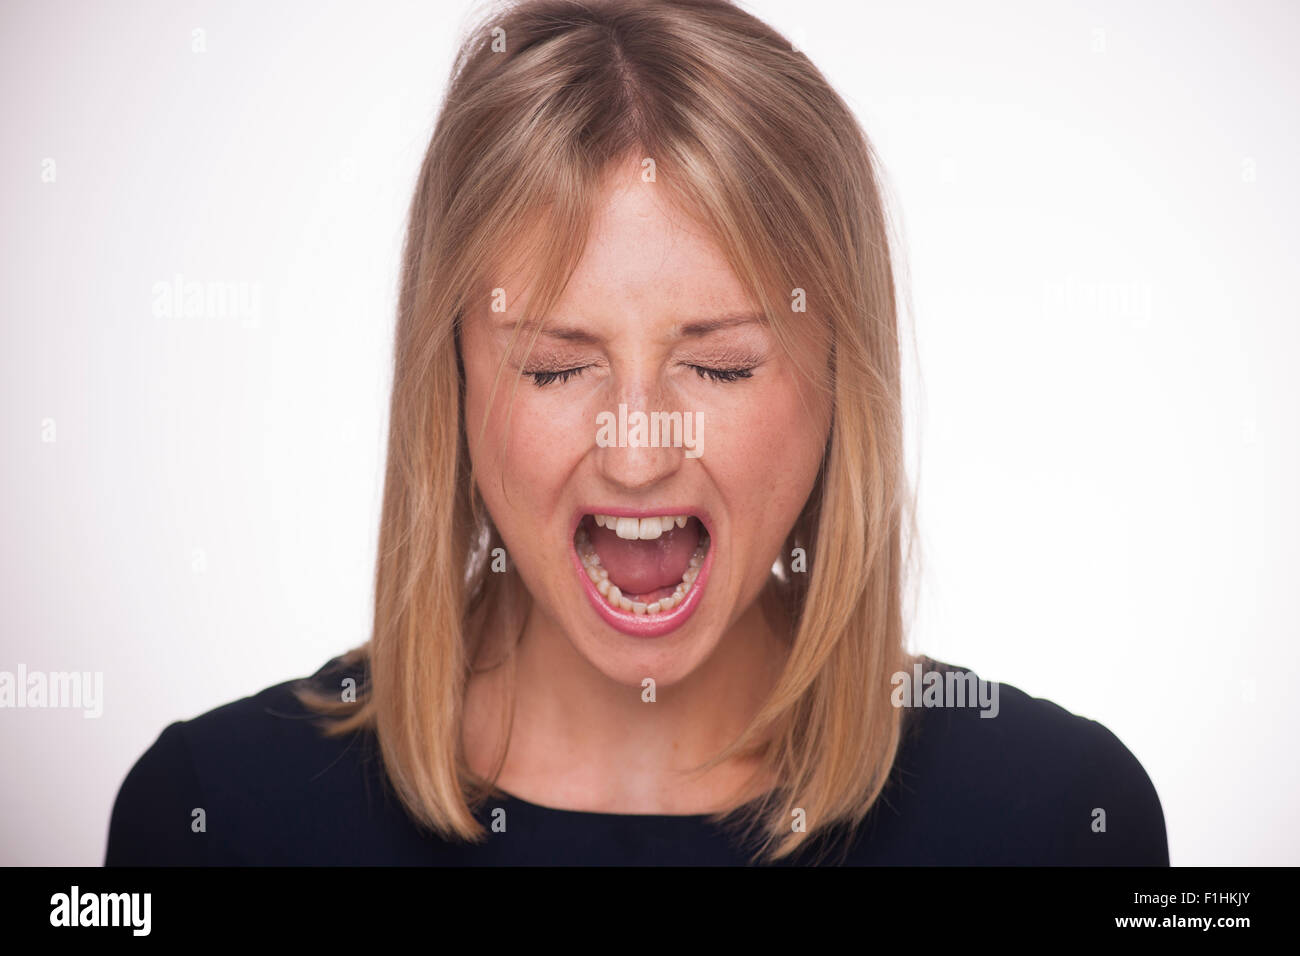 Blonde woman yelling screaming with her eyes closed. - Stock Image